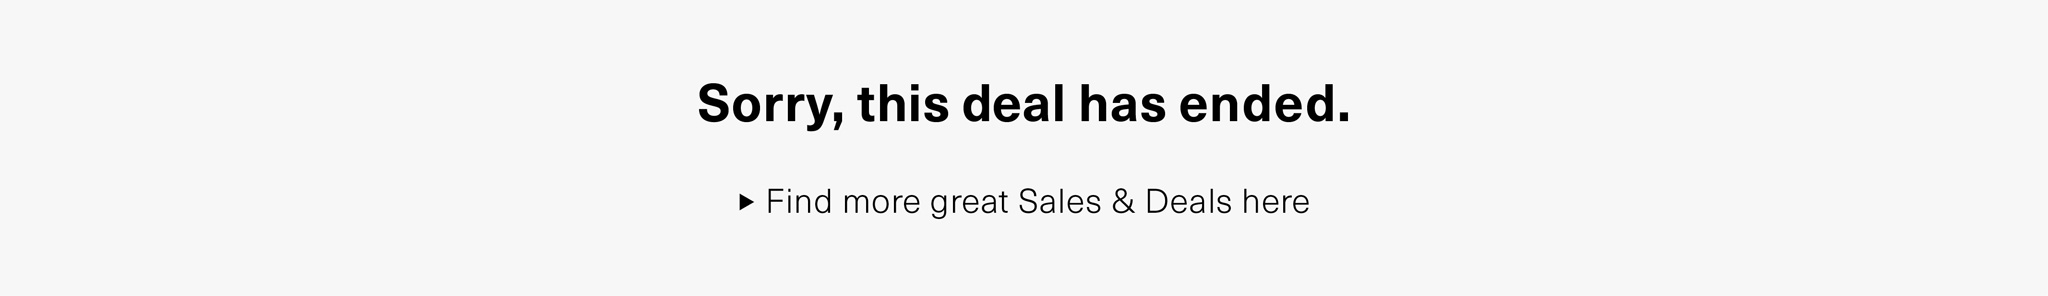 Sorry, this deal has ended.